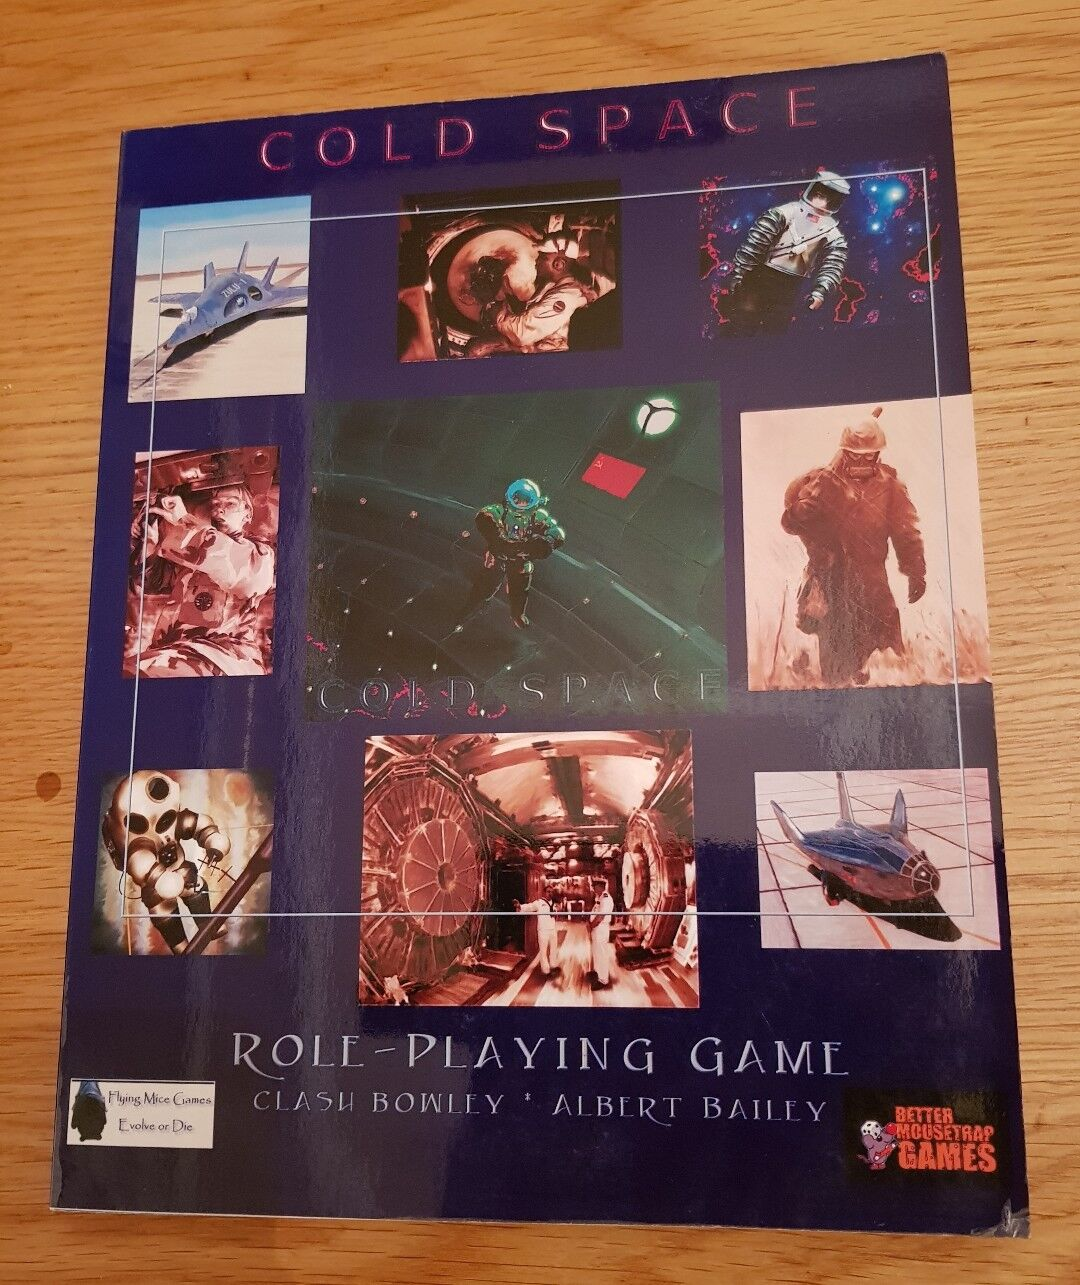 COLD SPACE RPG - VERY RARE COREBOOK FLYING MICE GAMES RPG ROLE-PLAYING SCIFI OOP